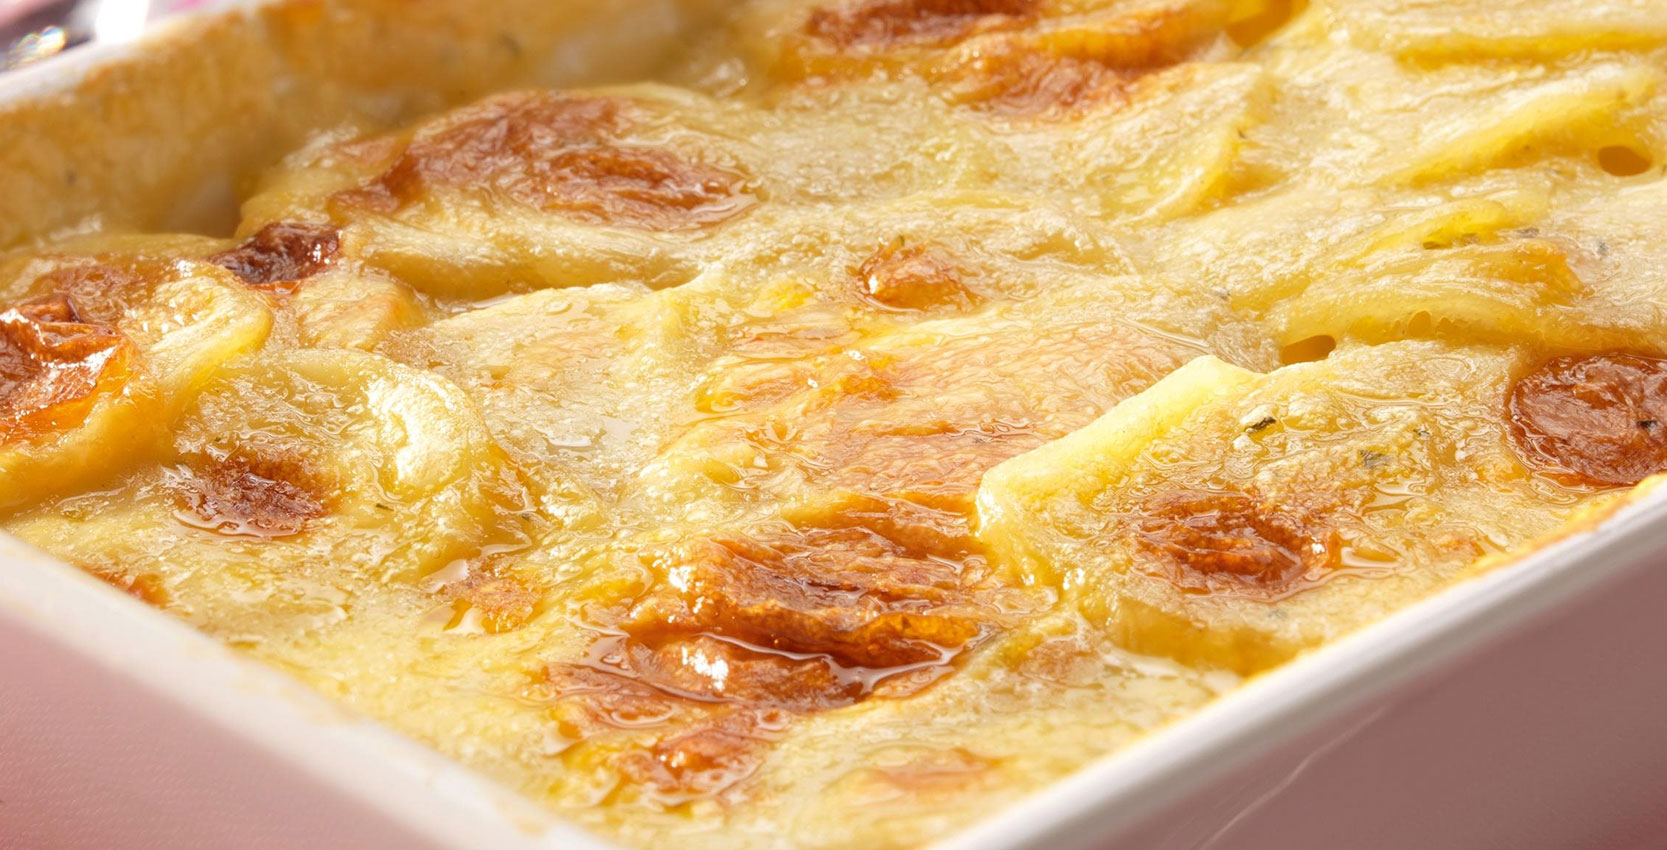 recette du gratin dauphinois officielle auguste escoffier recette de cuisine facile et pas. Black Bedroom Furniture Sets. Home Design Ideas